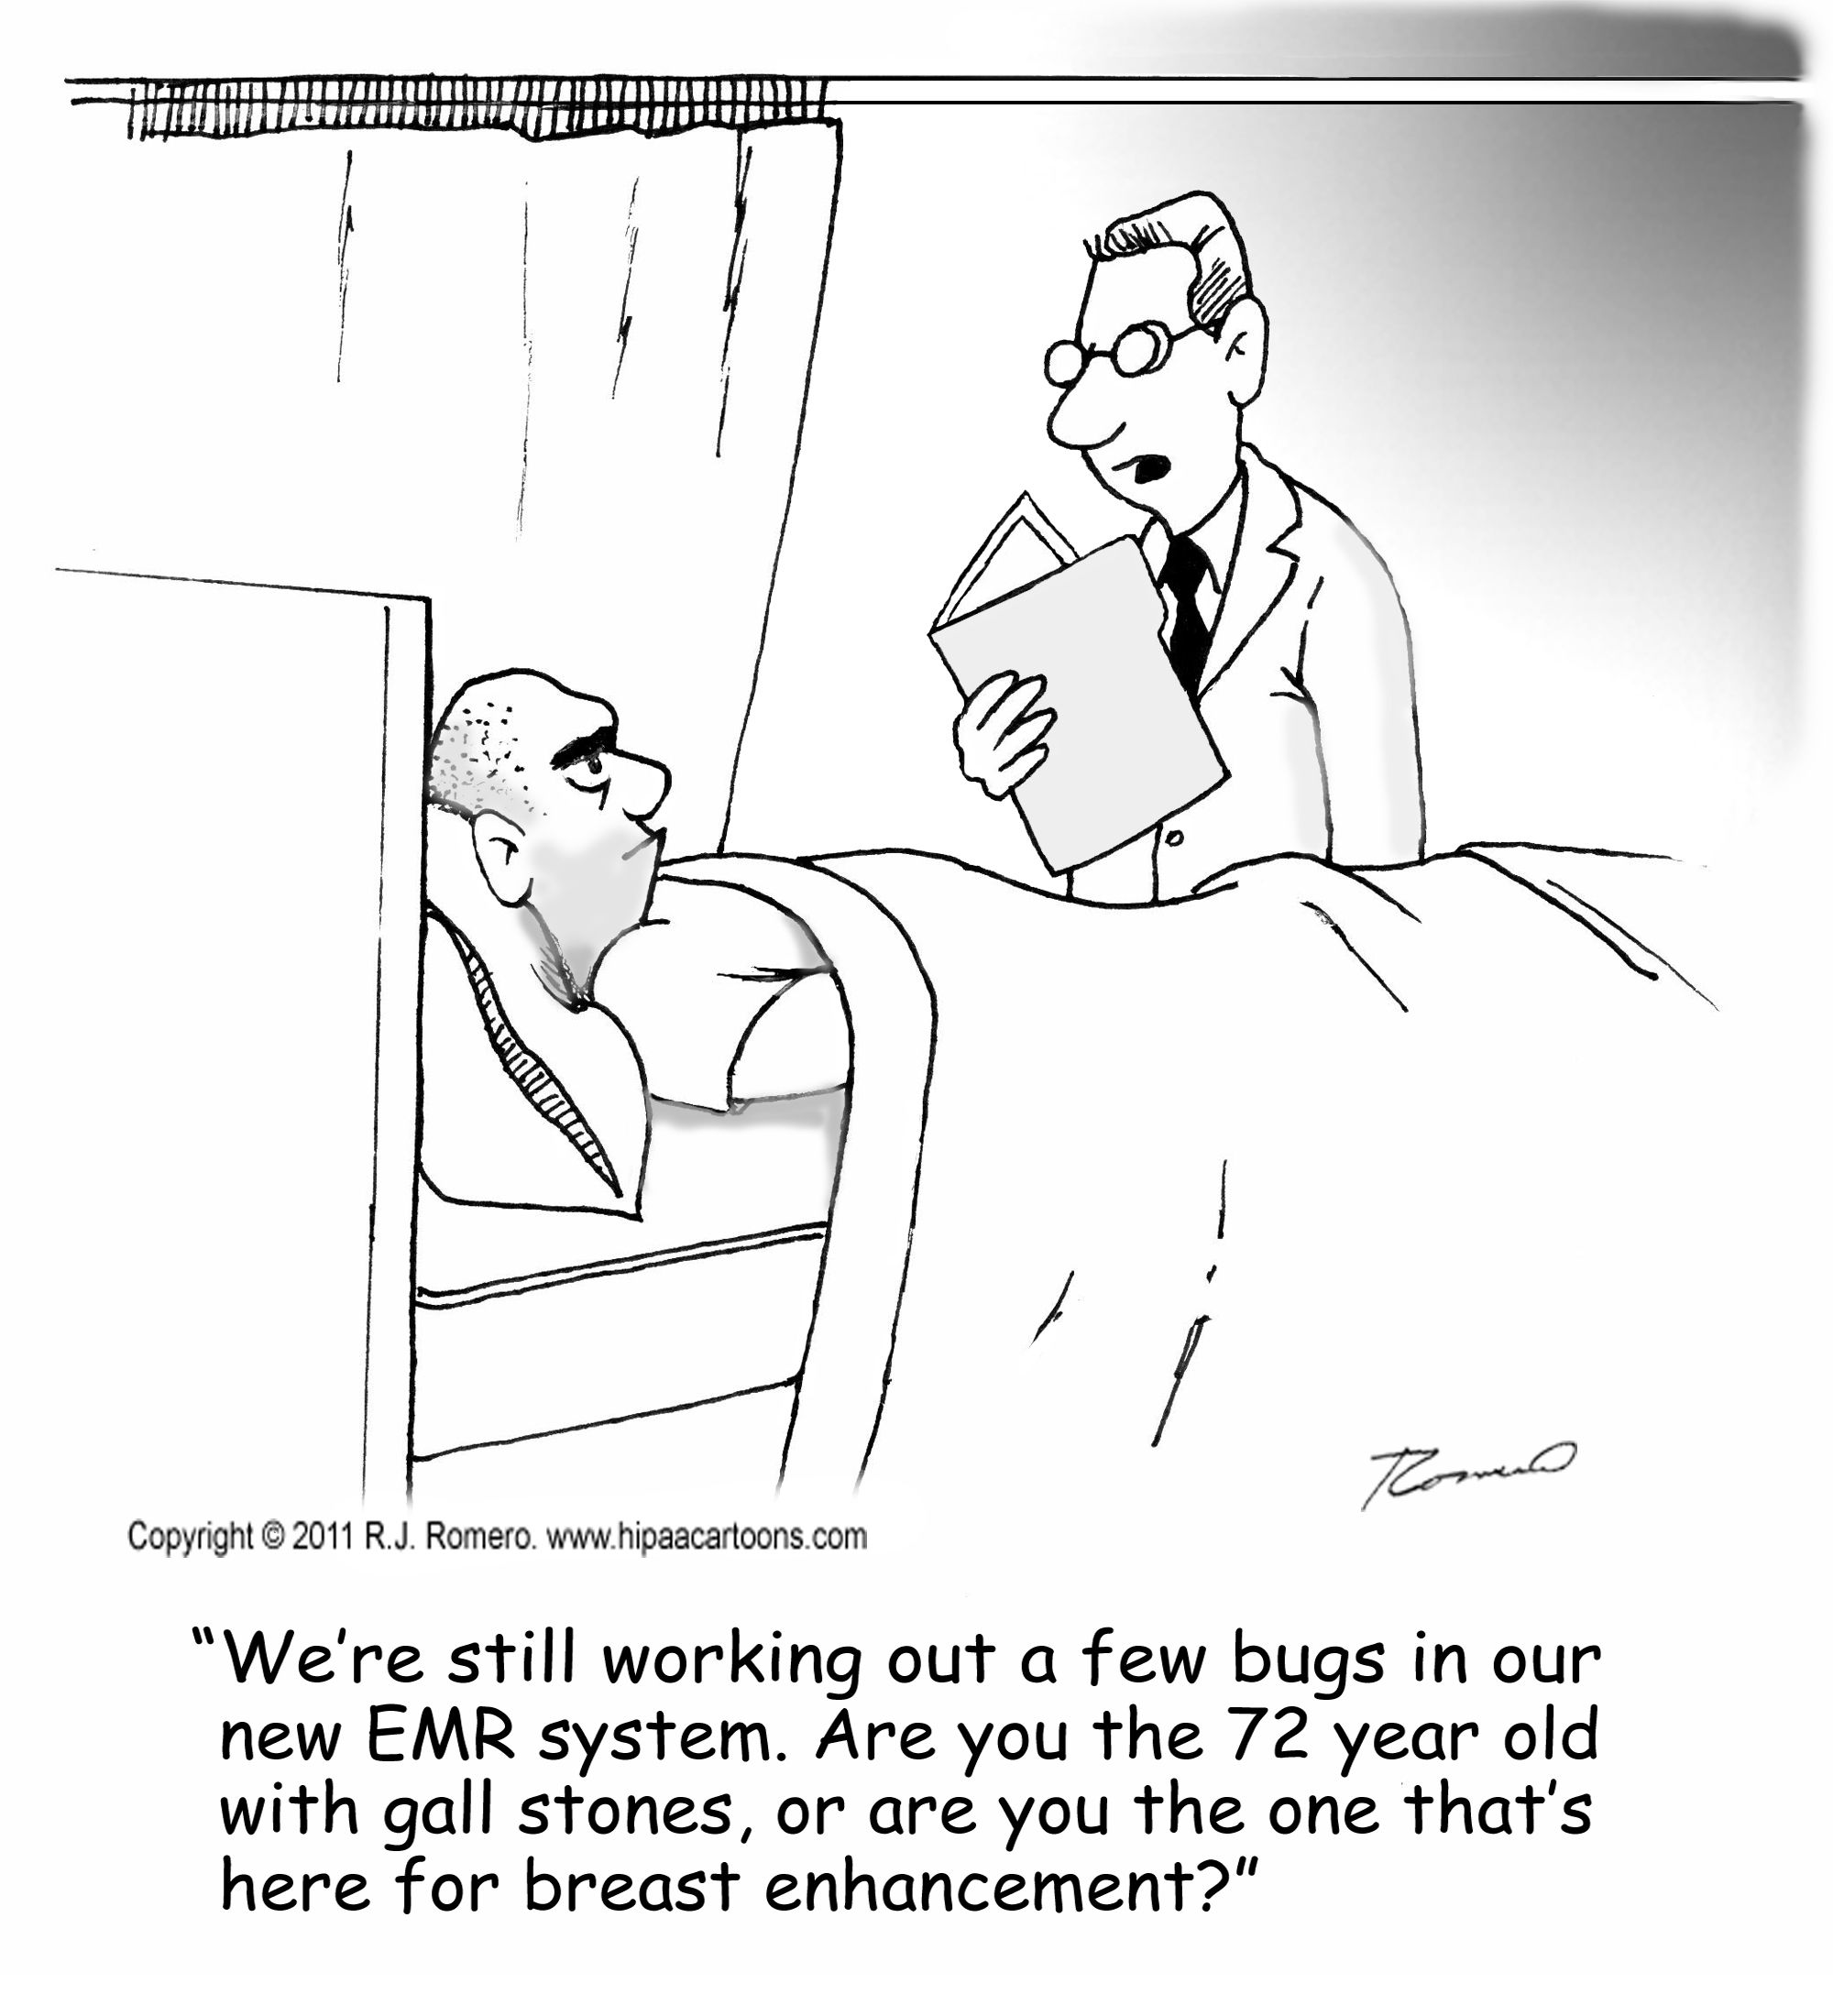 Electronic Medical Records Cartoons  Ehr  Emr Cartoons  Hipaa